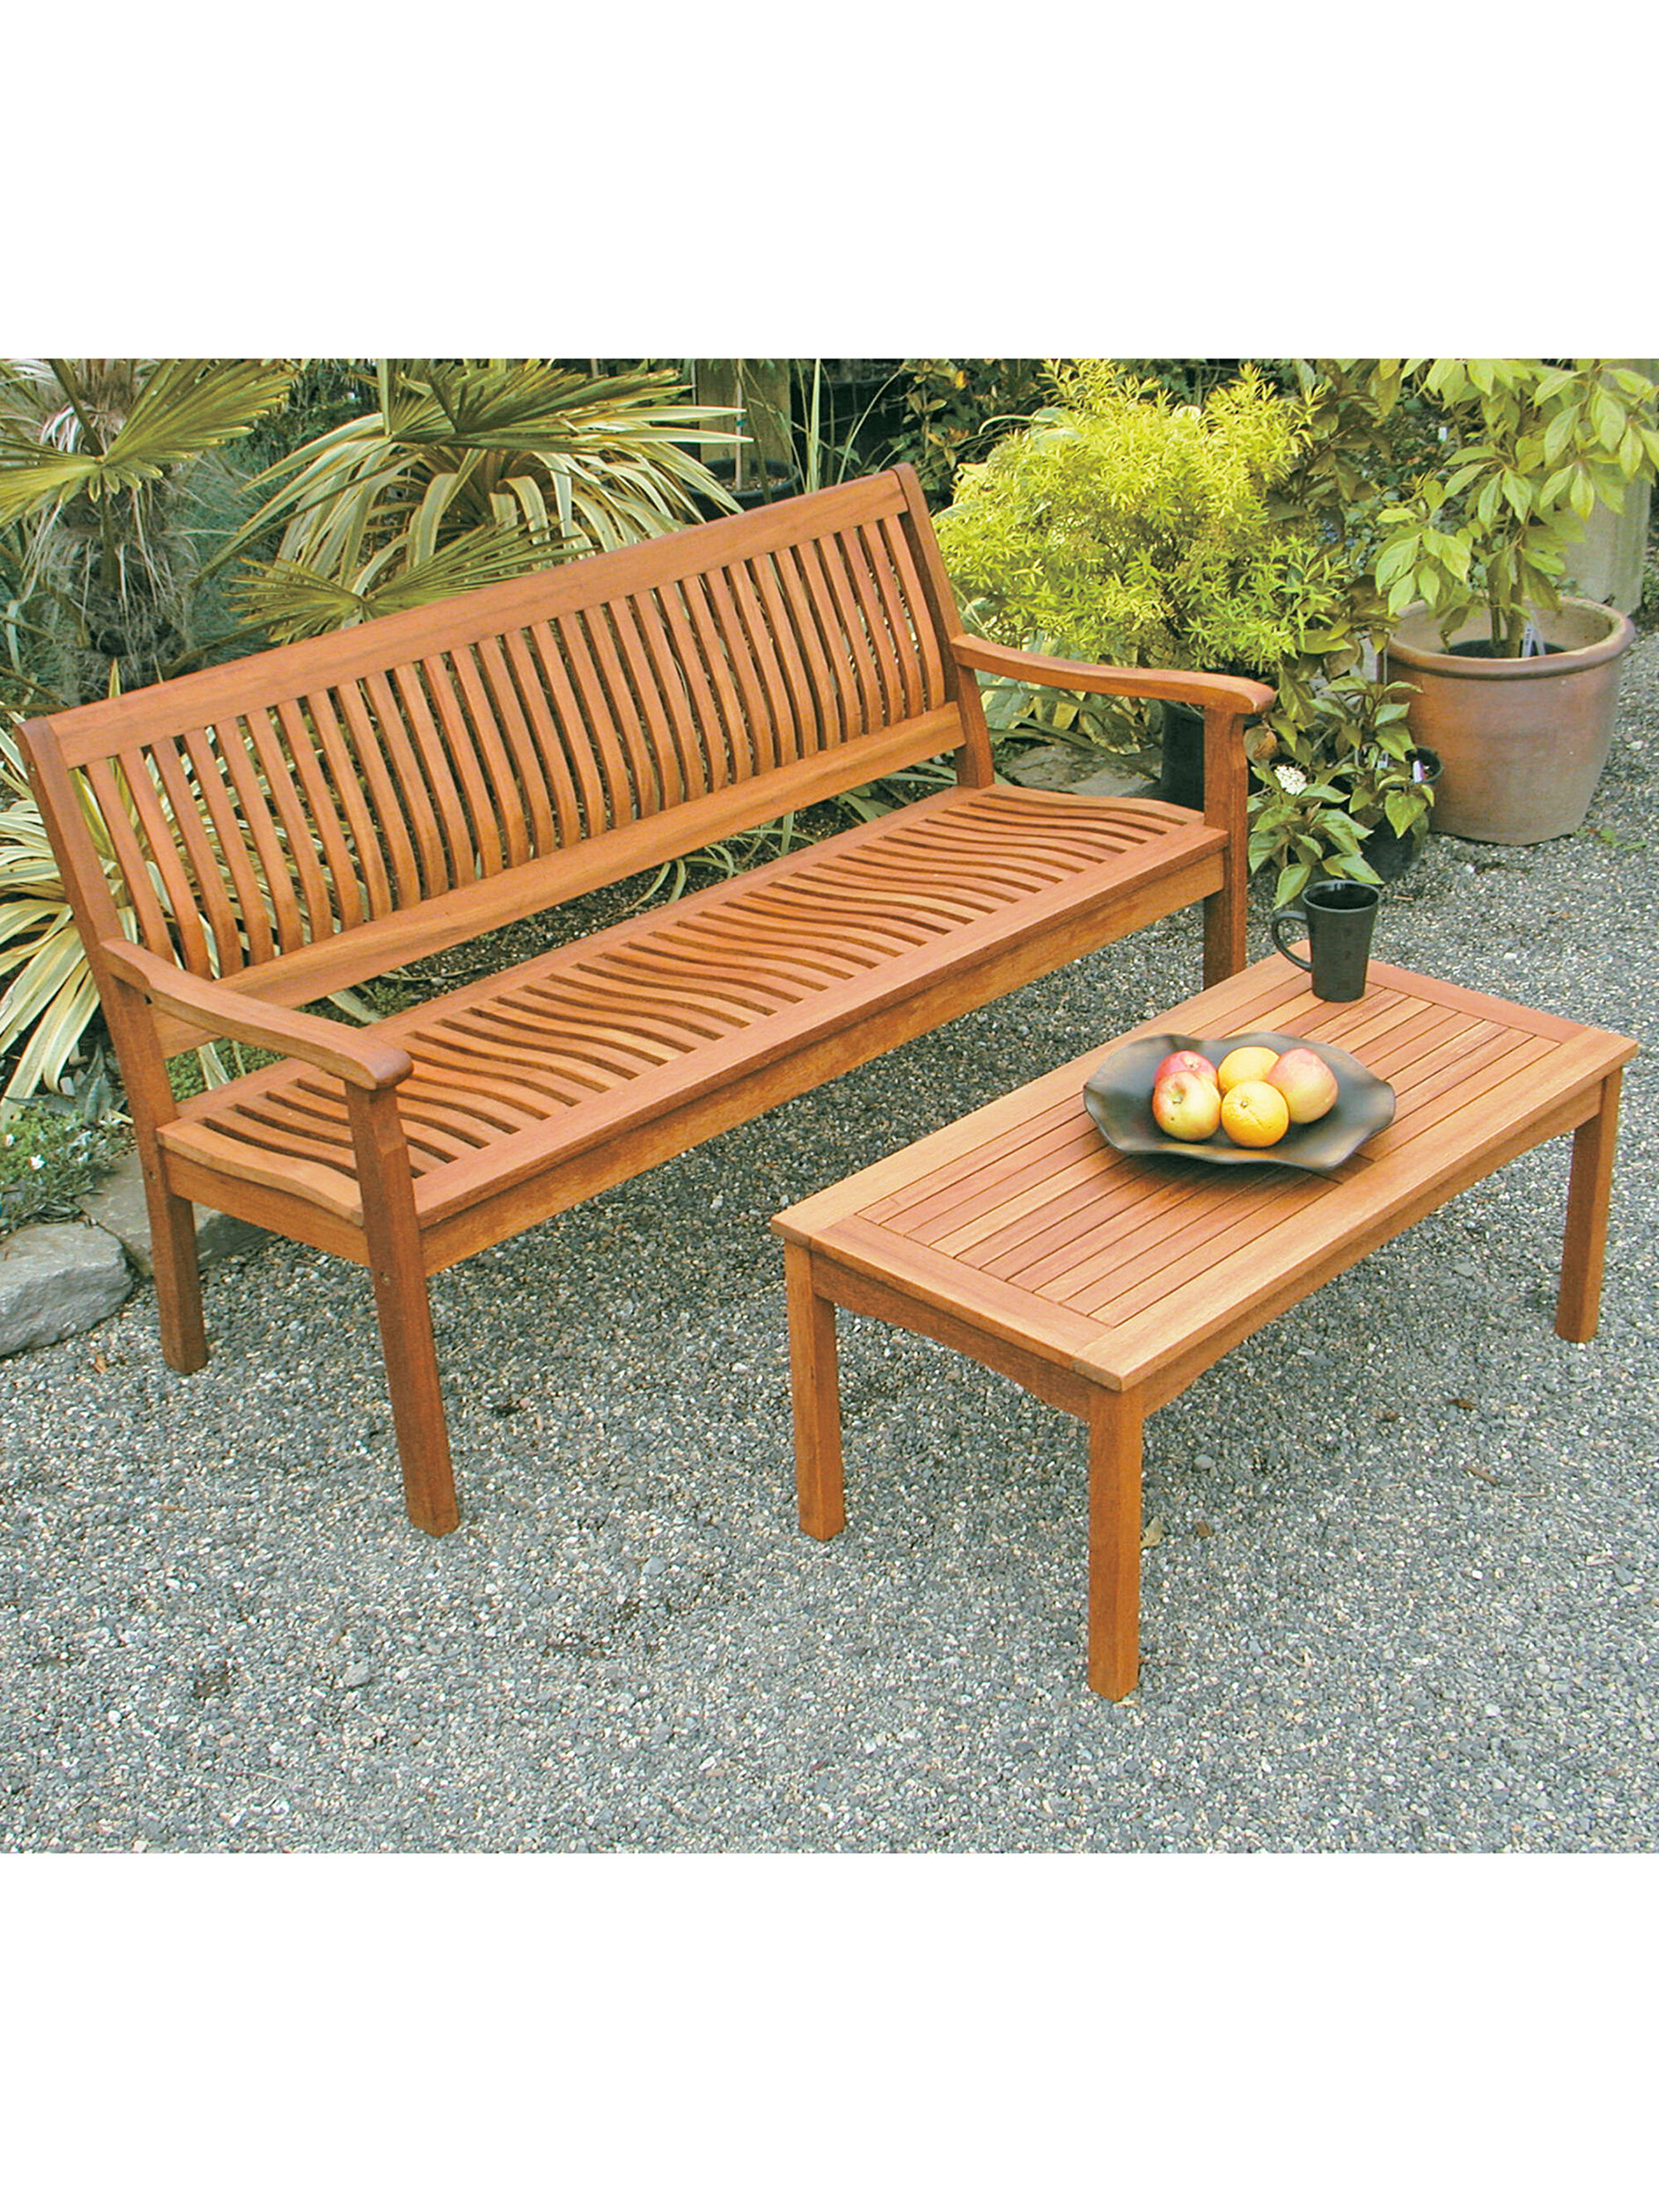 Marvelous photograph of 8592889 002V wood outdoor patio or garden bench 5 ft.jpg with #A25D29 color and 2000x2666 pixels